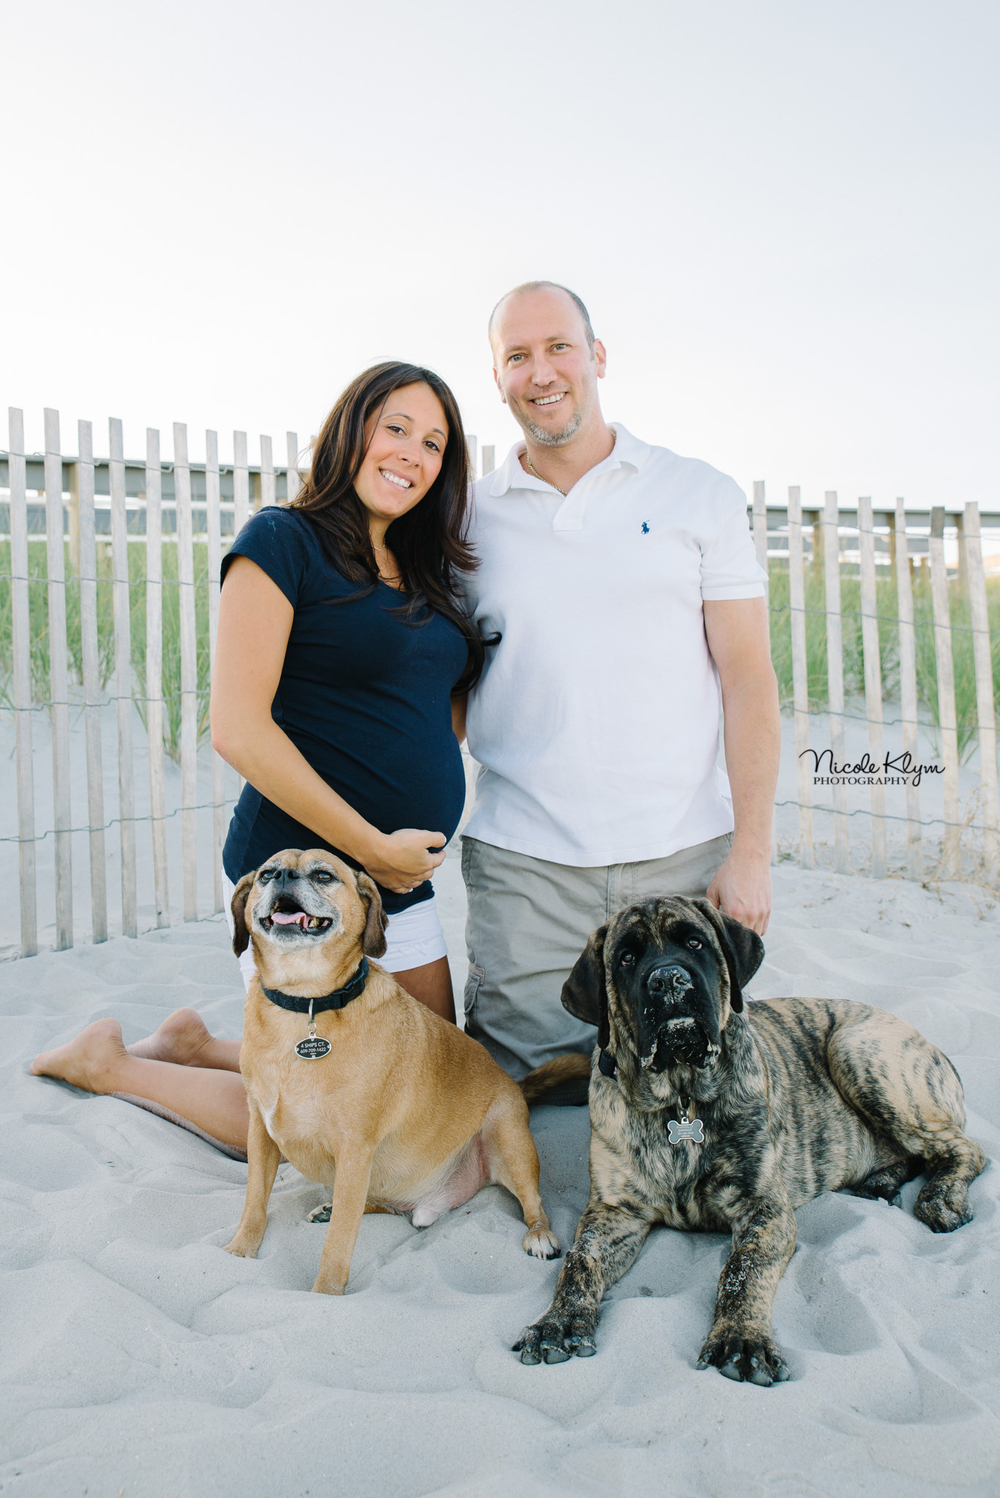 LBI, NJ Beach Maternity Photos | Nicole Klym Photography | www.nicoleklym.com